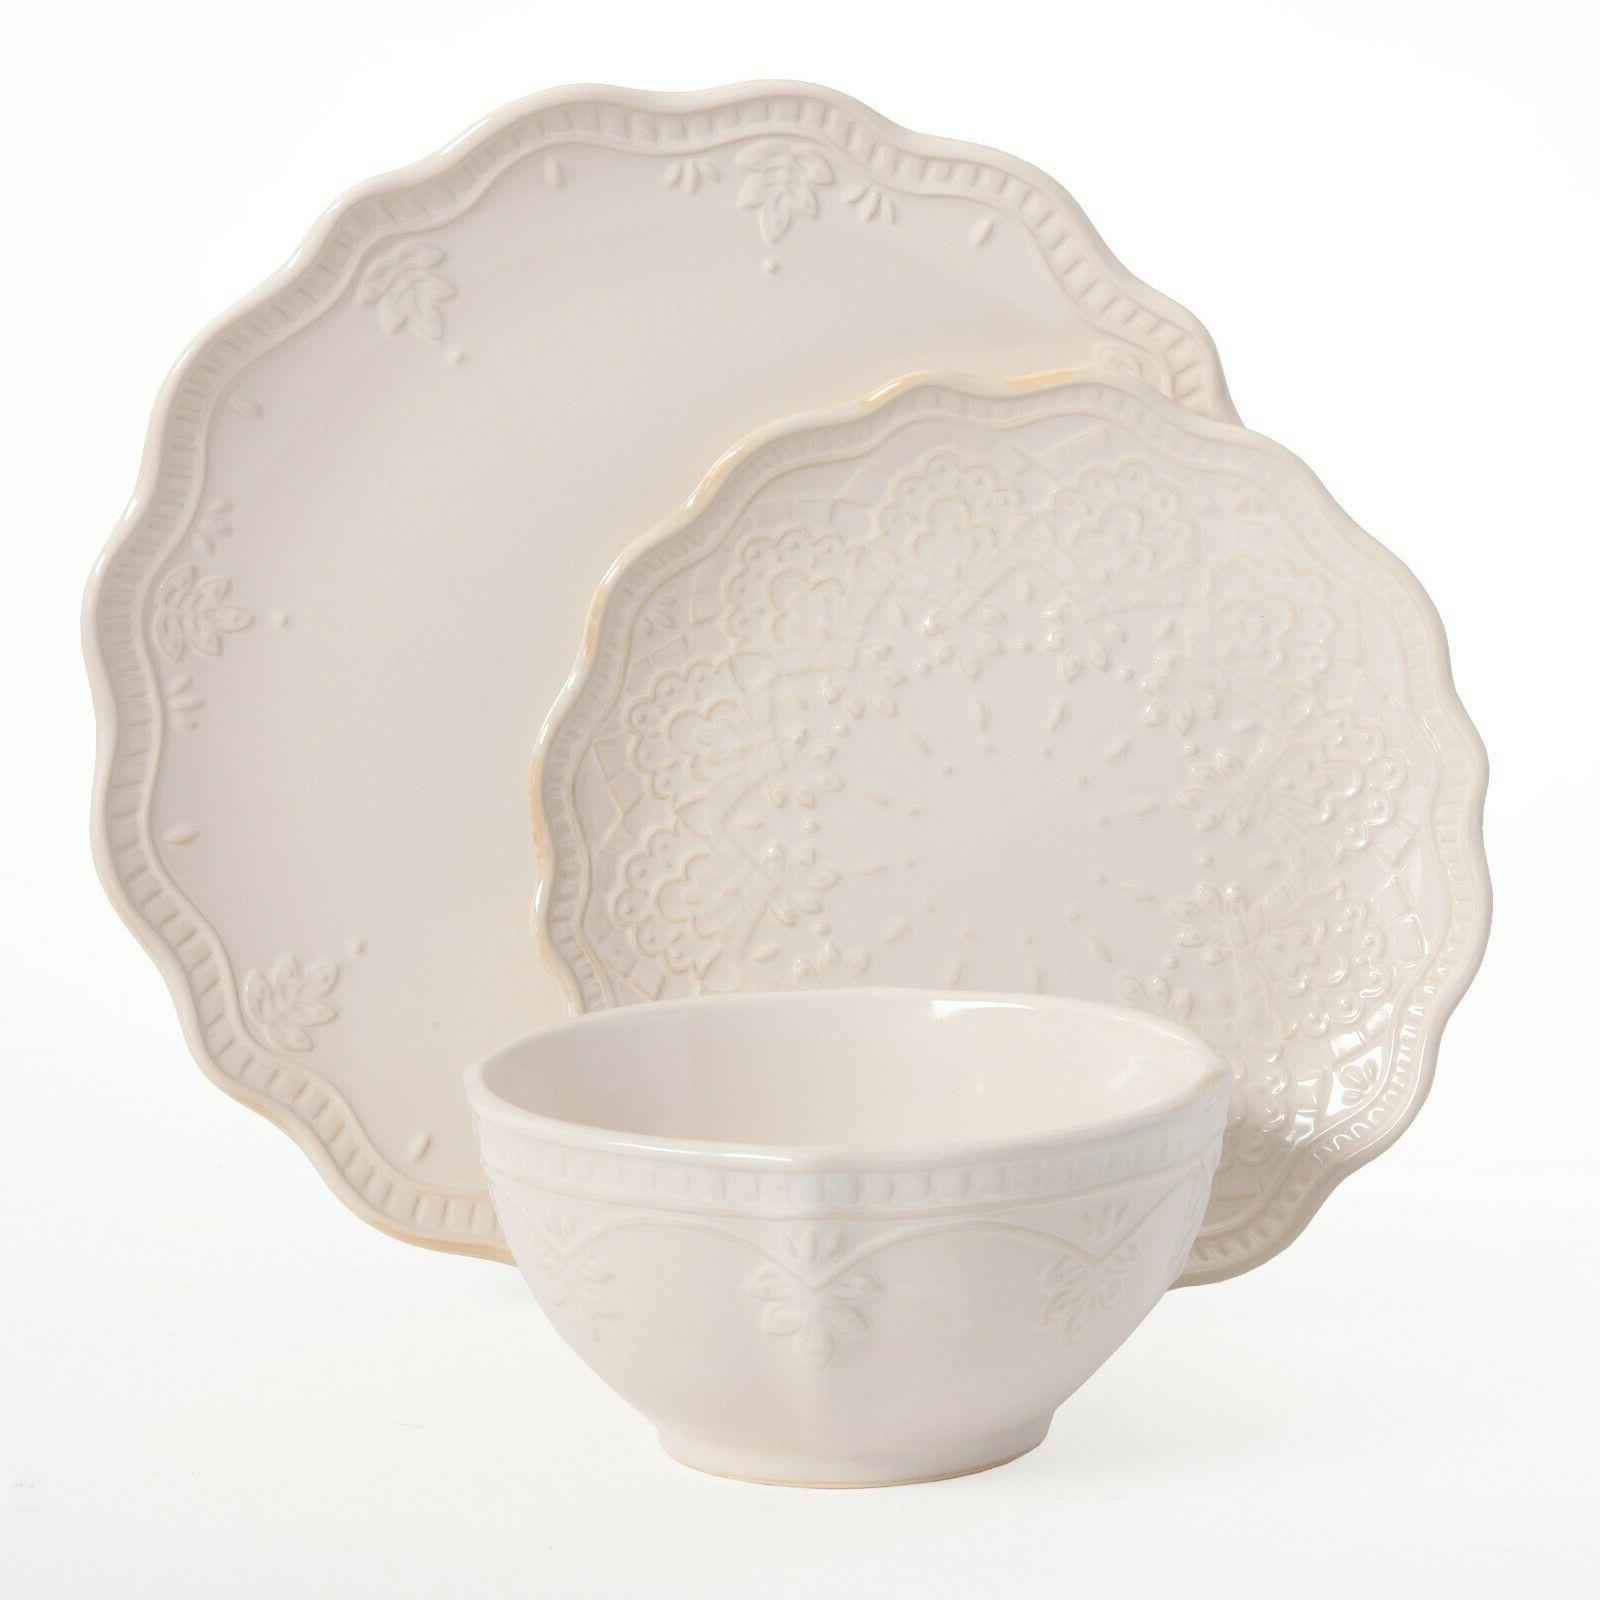 The Pioneer Woman Lace 12-Piece Dinnerware Linen